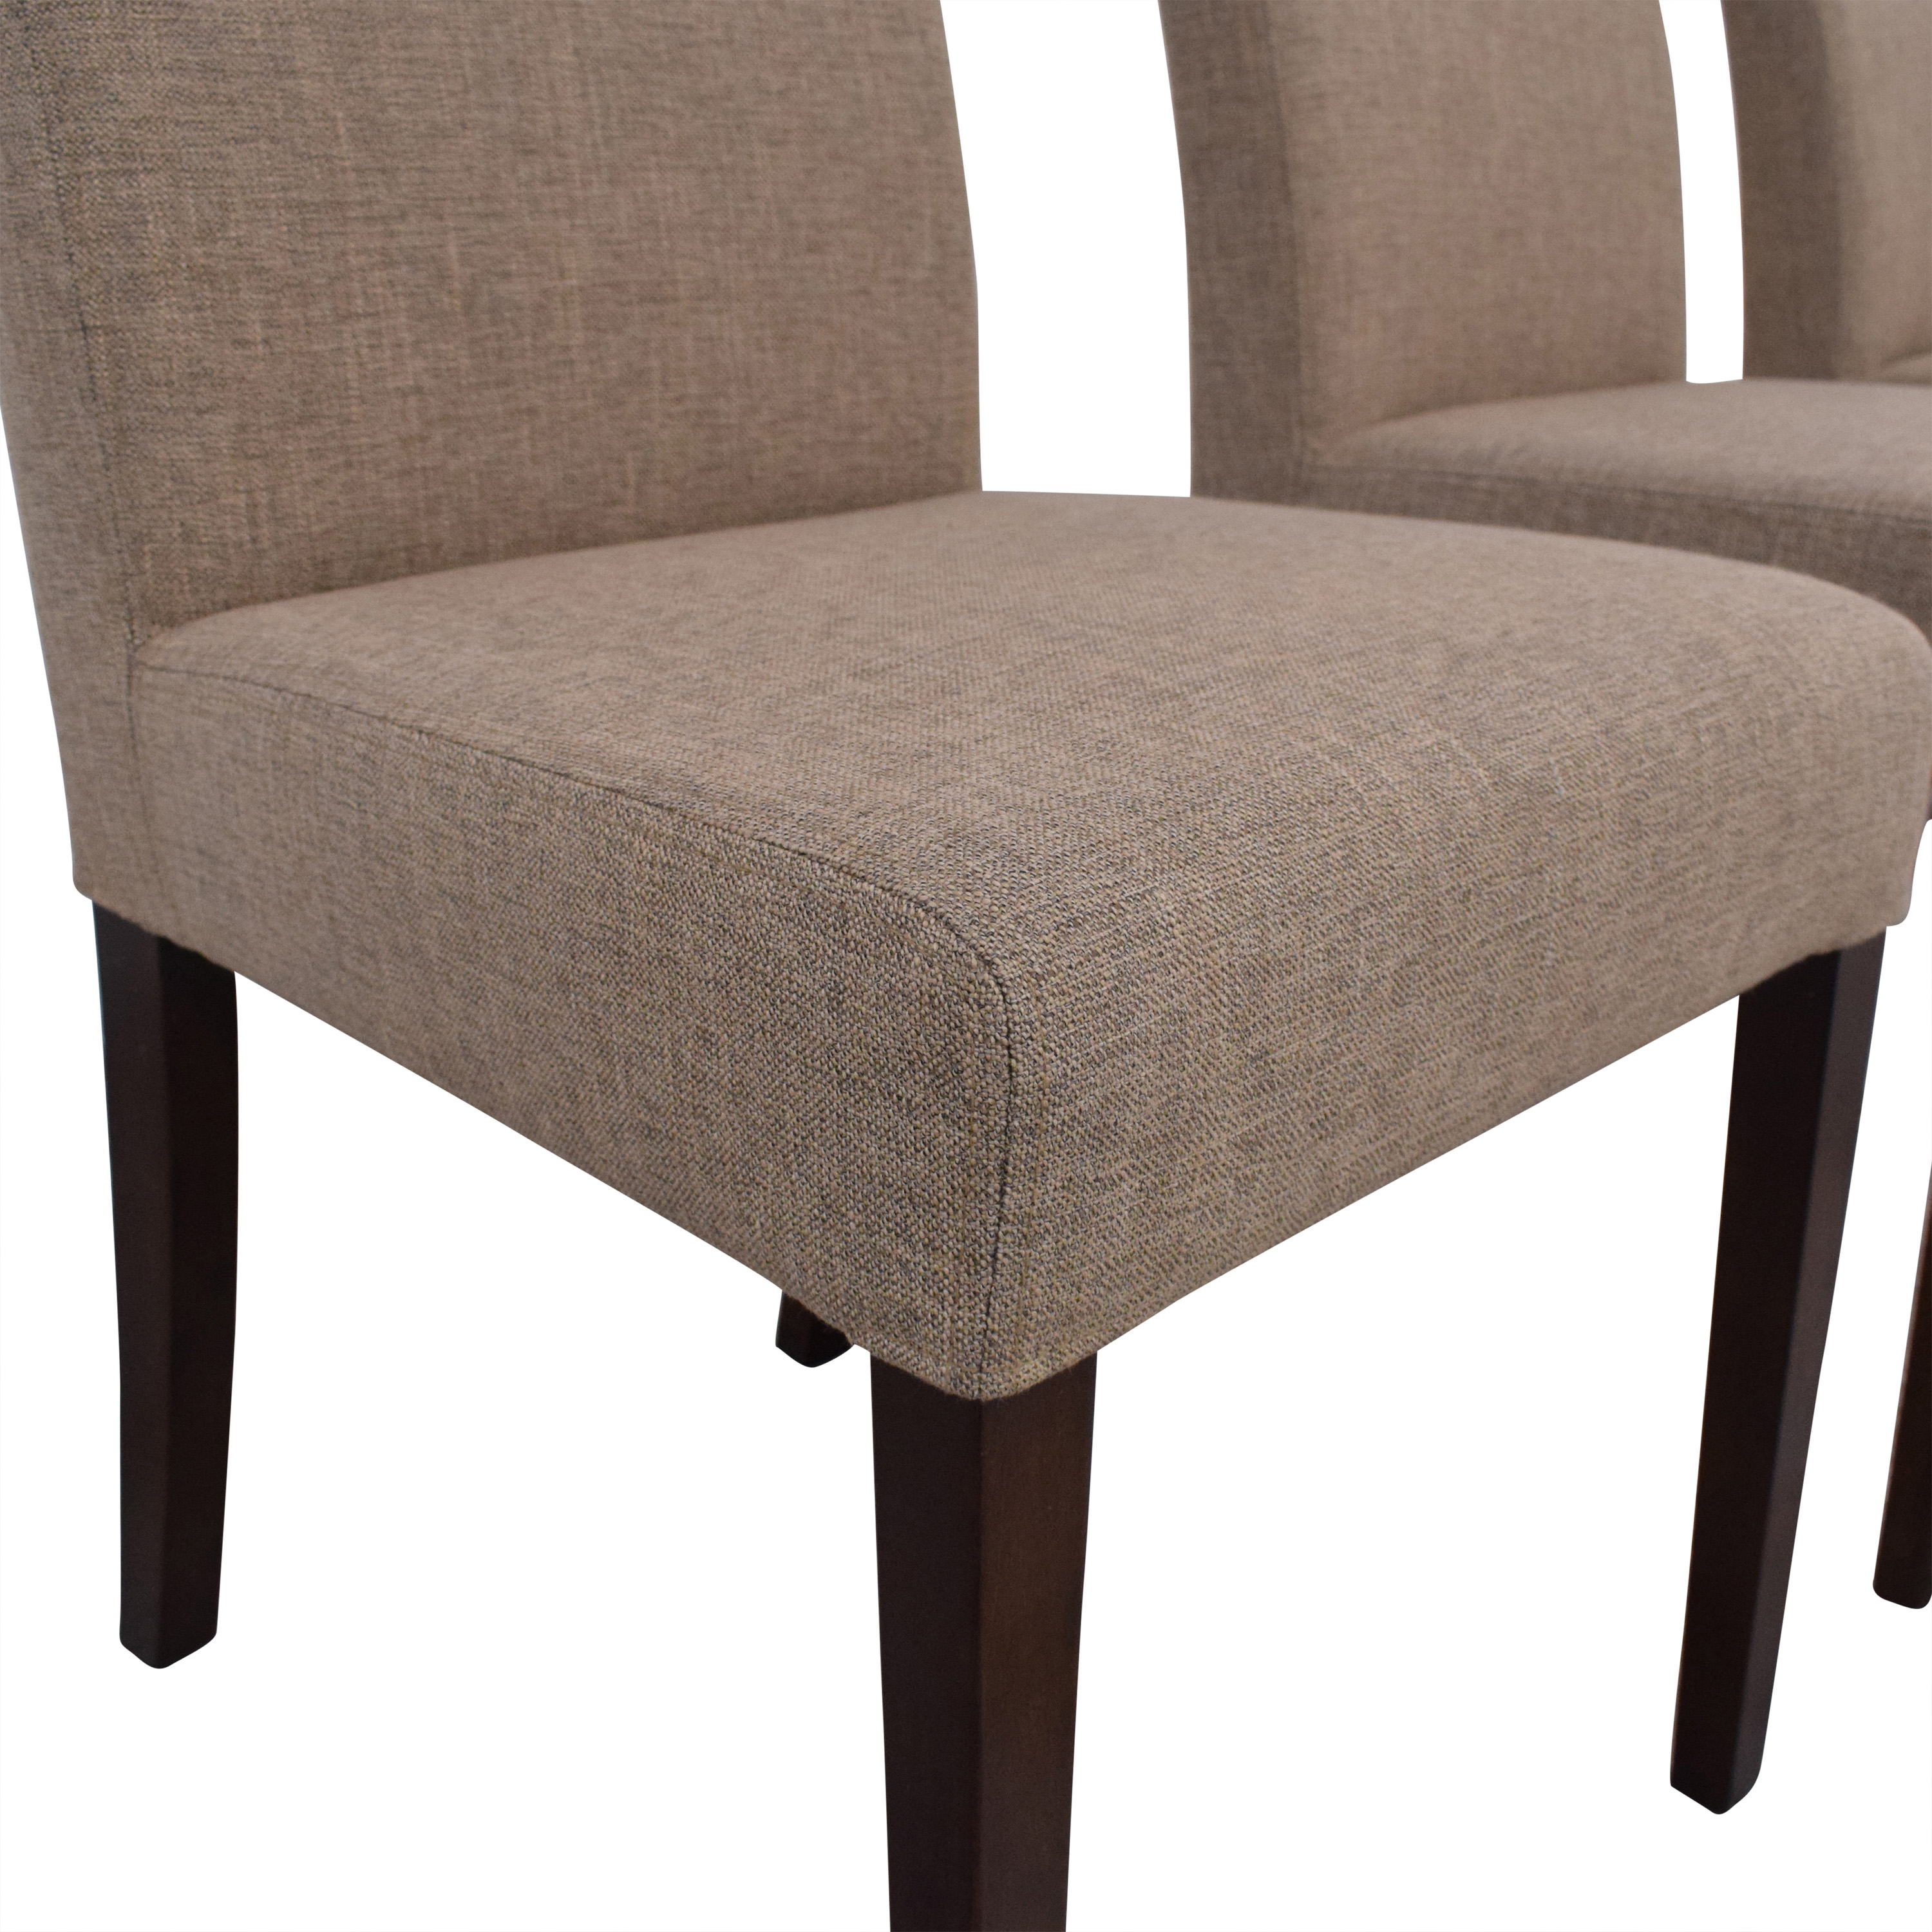 shop Crate & Barrel Crate & Barrel Lowe Dining Chairs online